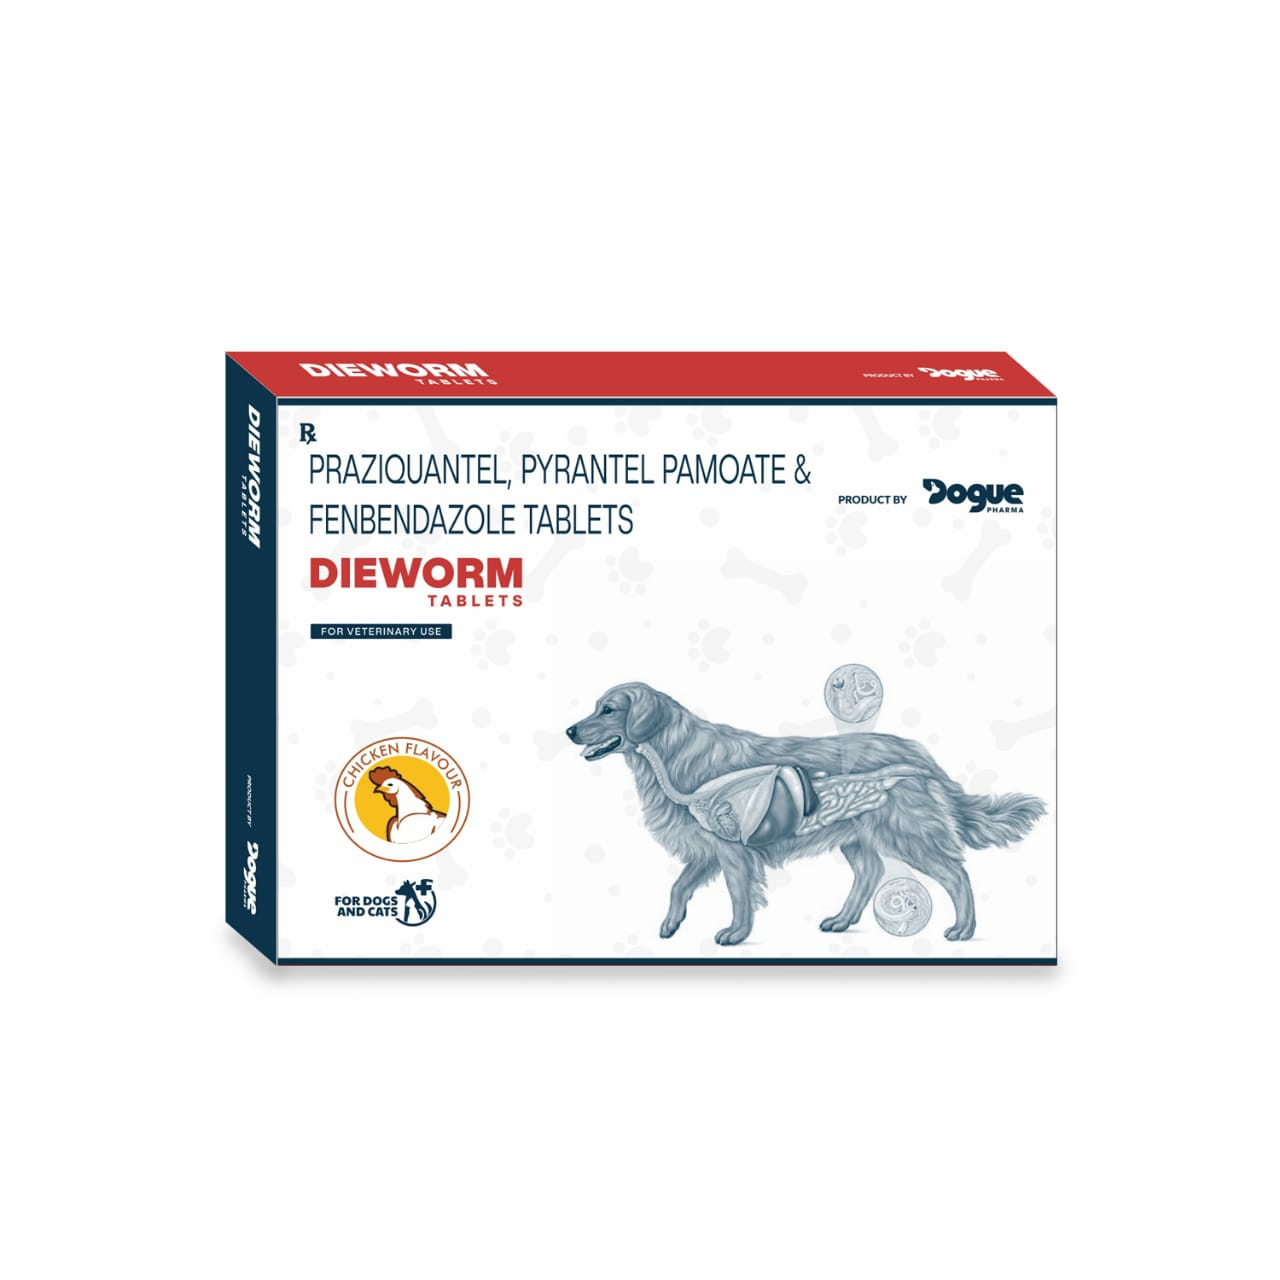 Dieworm Tablets